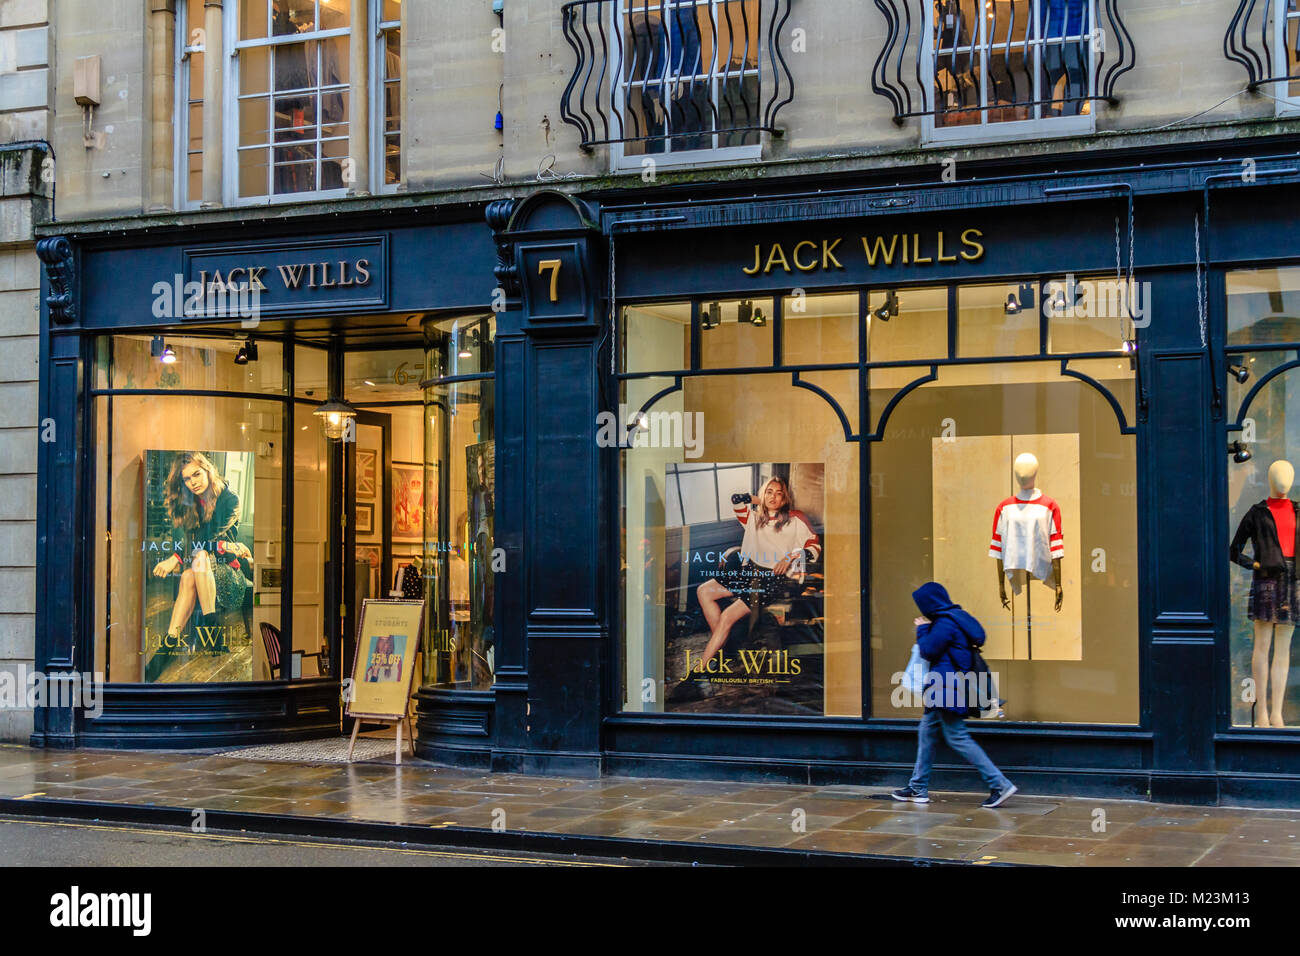 Shop frontage of Jack Wills clothing shop, Oxford. Feb 2018. - Stock Image